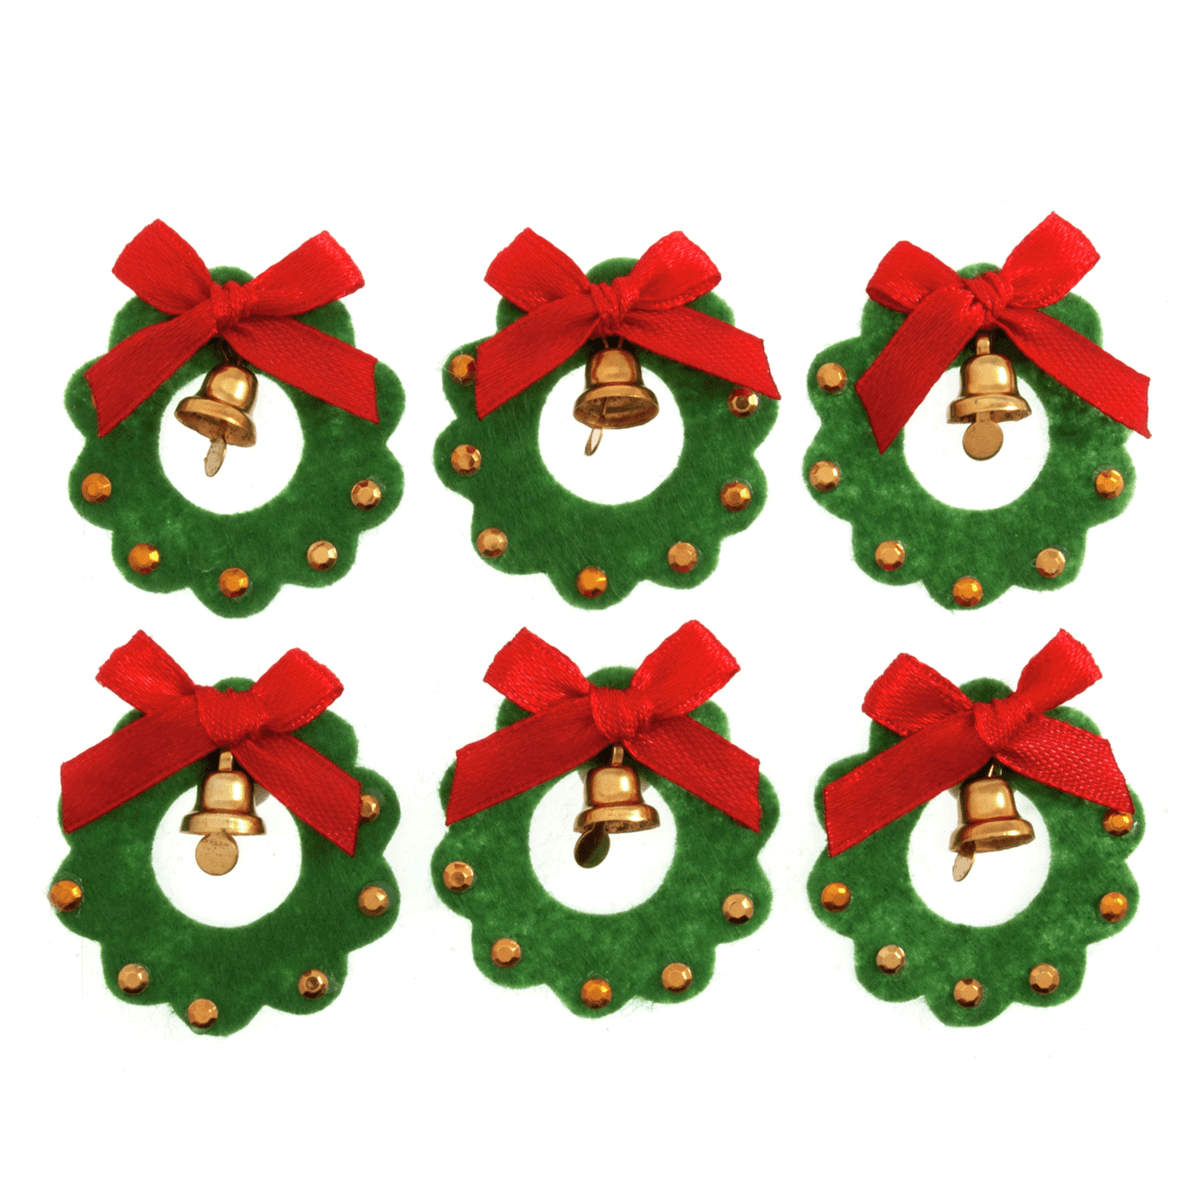 4 x Christmas Wreath with Bells Craft Scrap booking